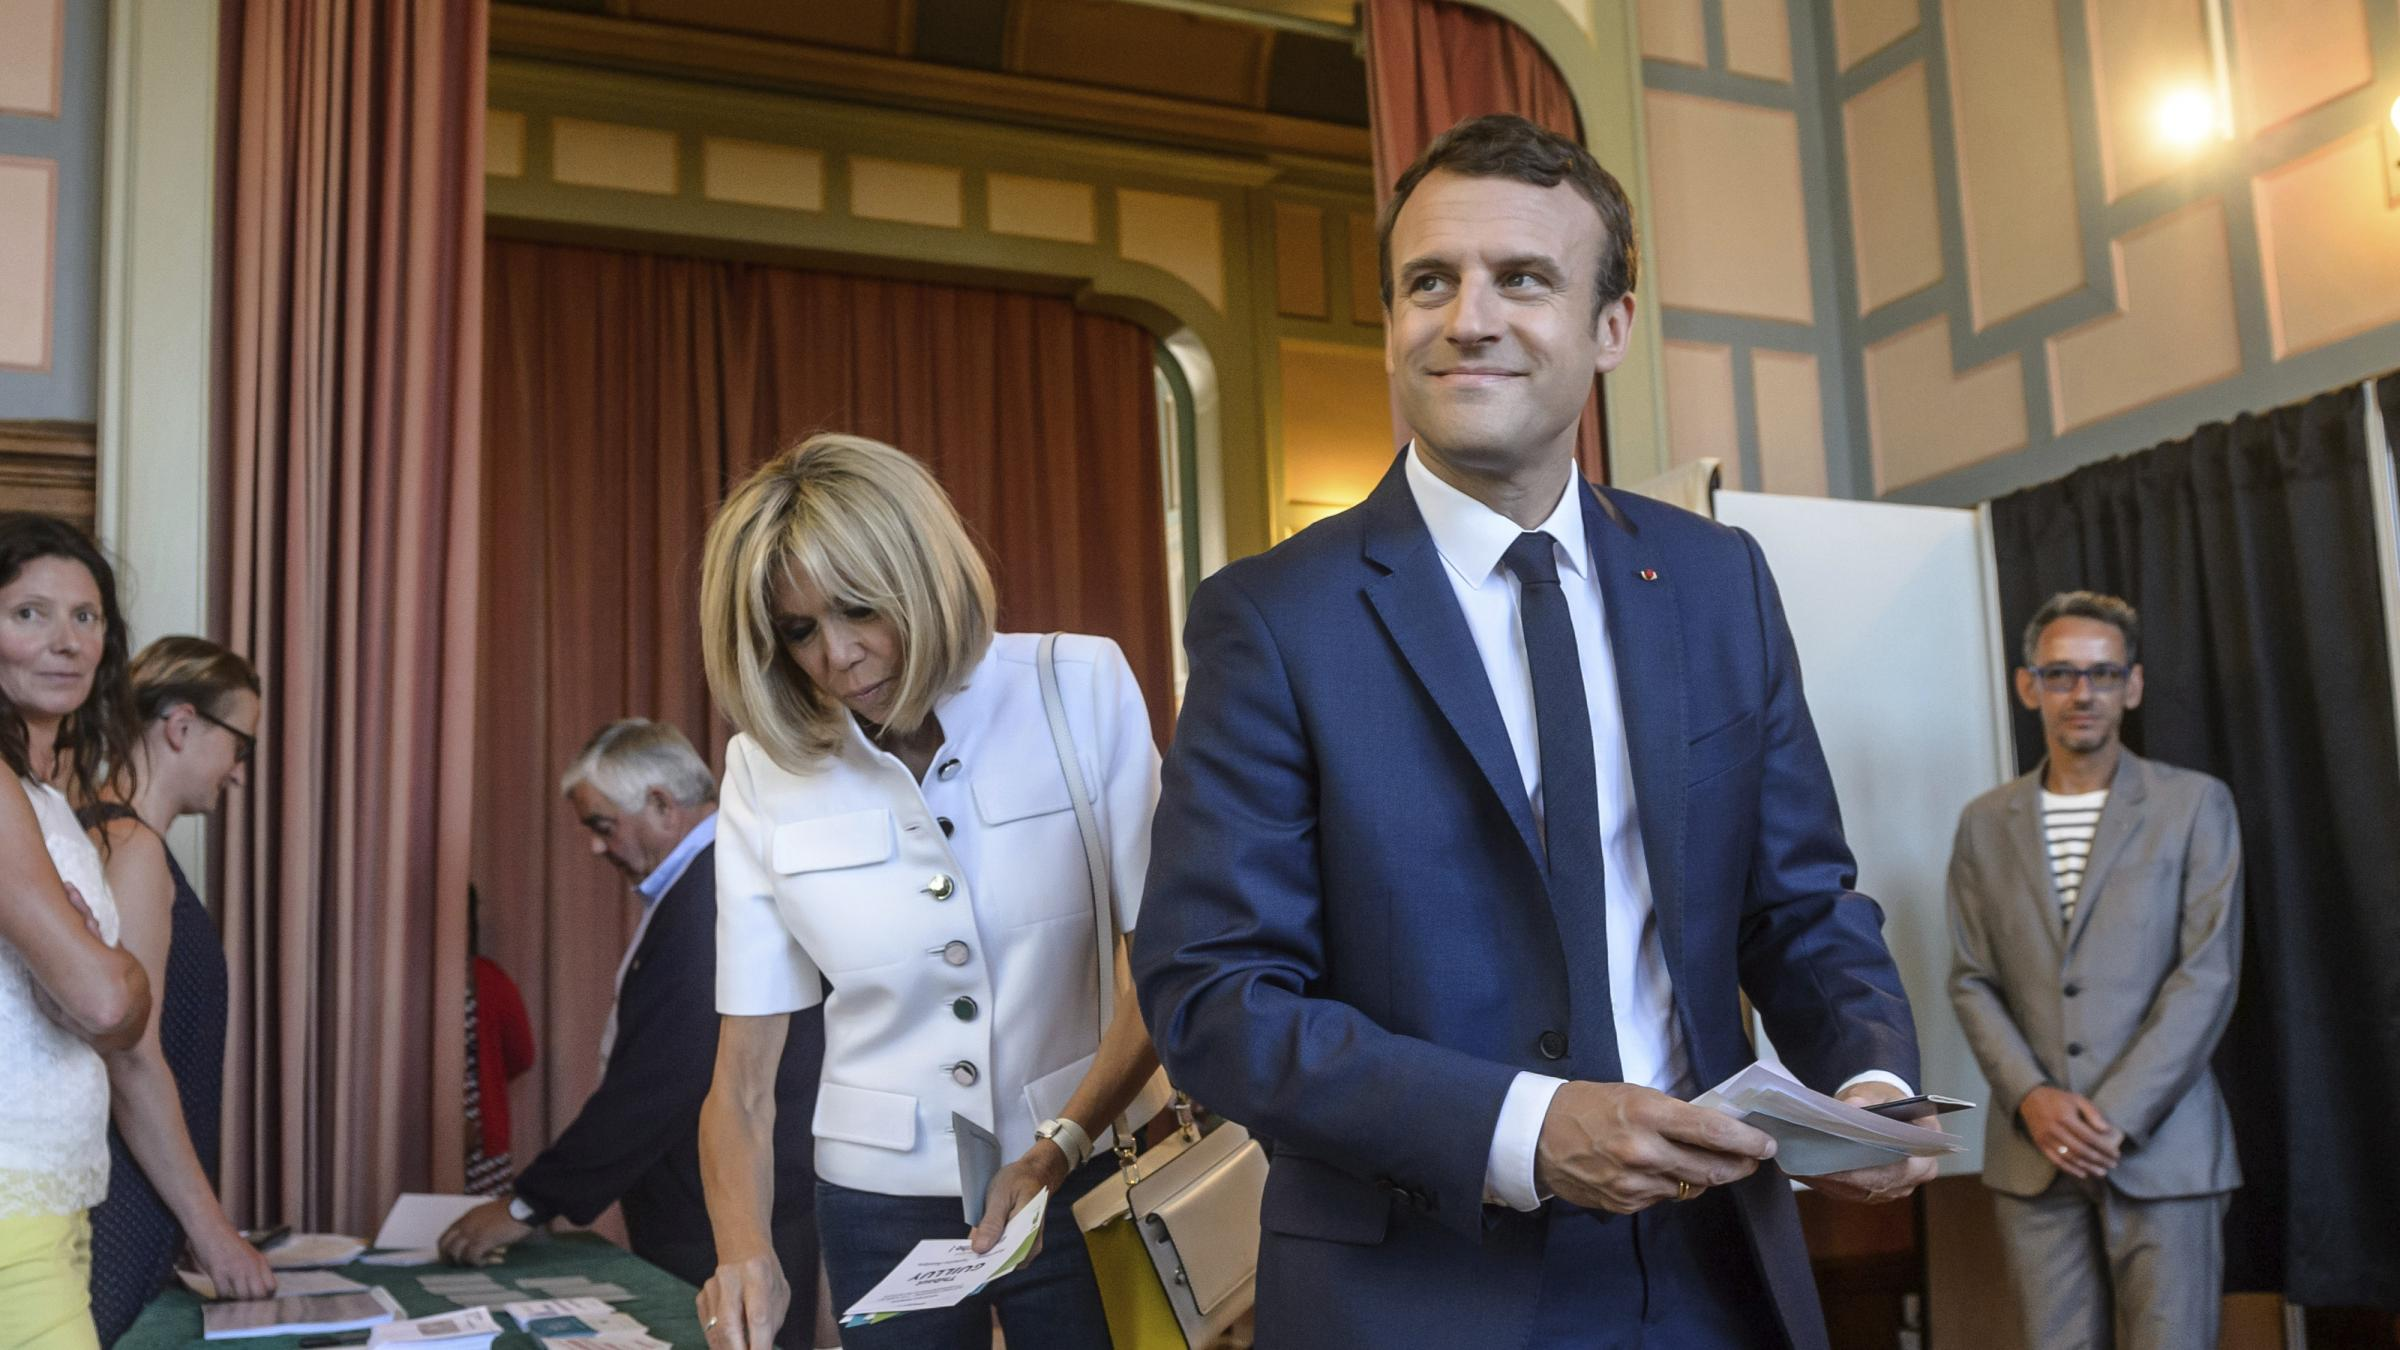 Macron headed for overwhelming parliamentary majority